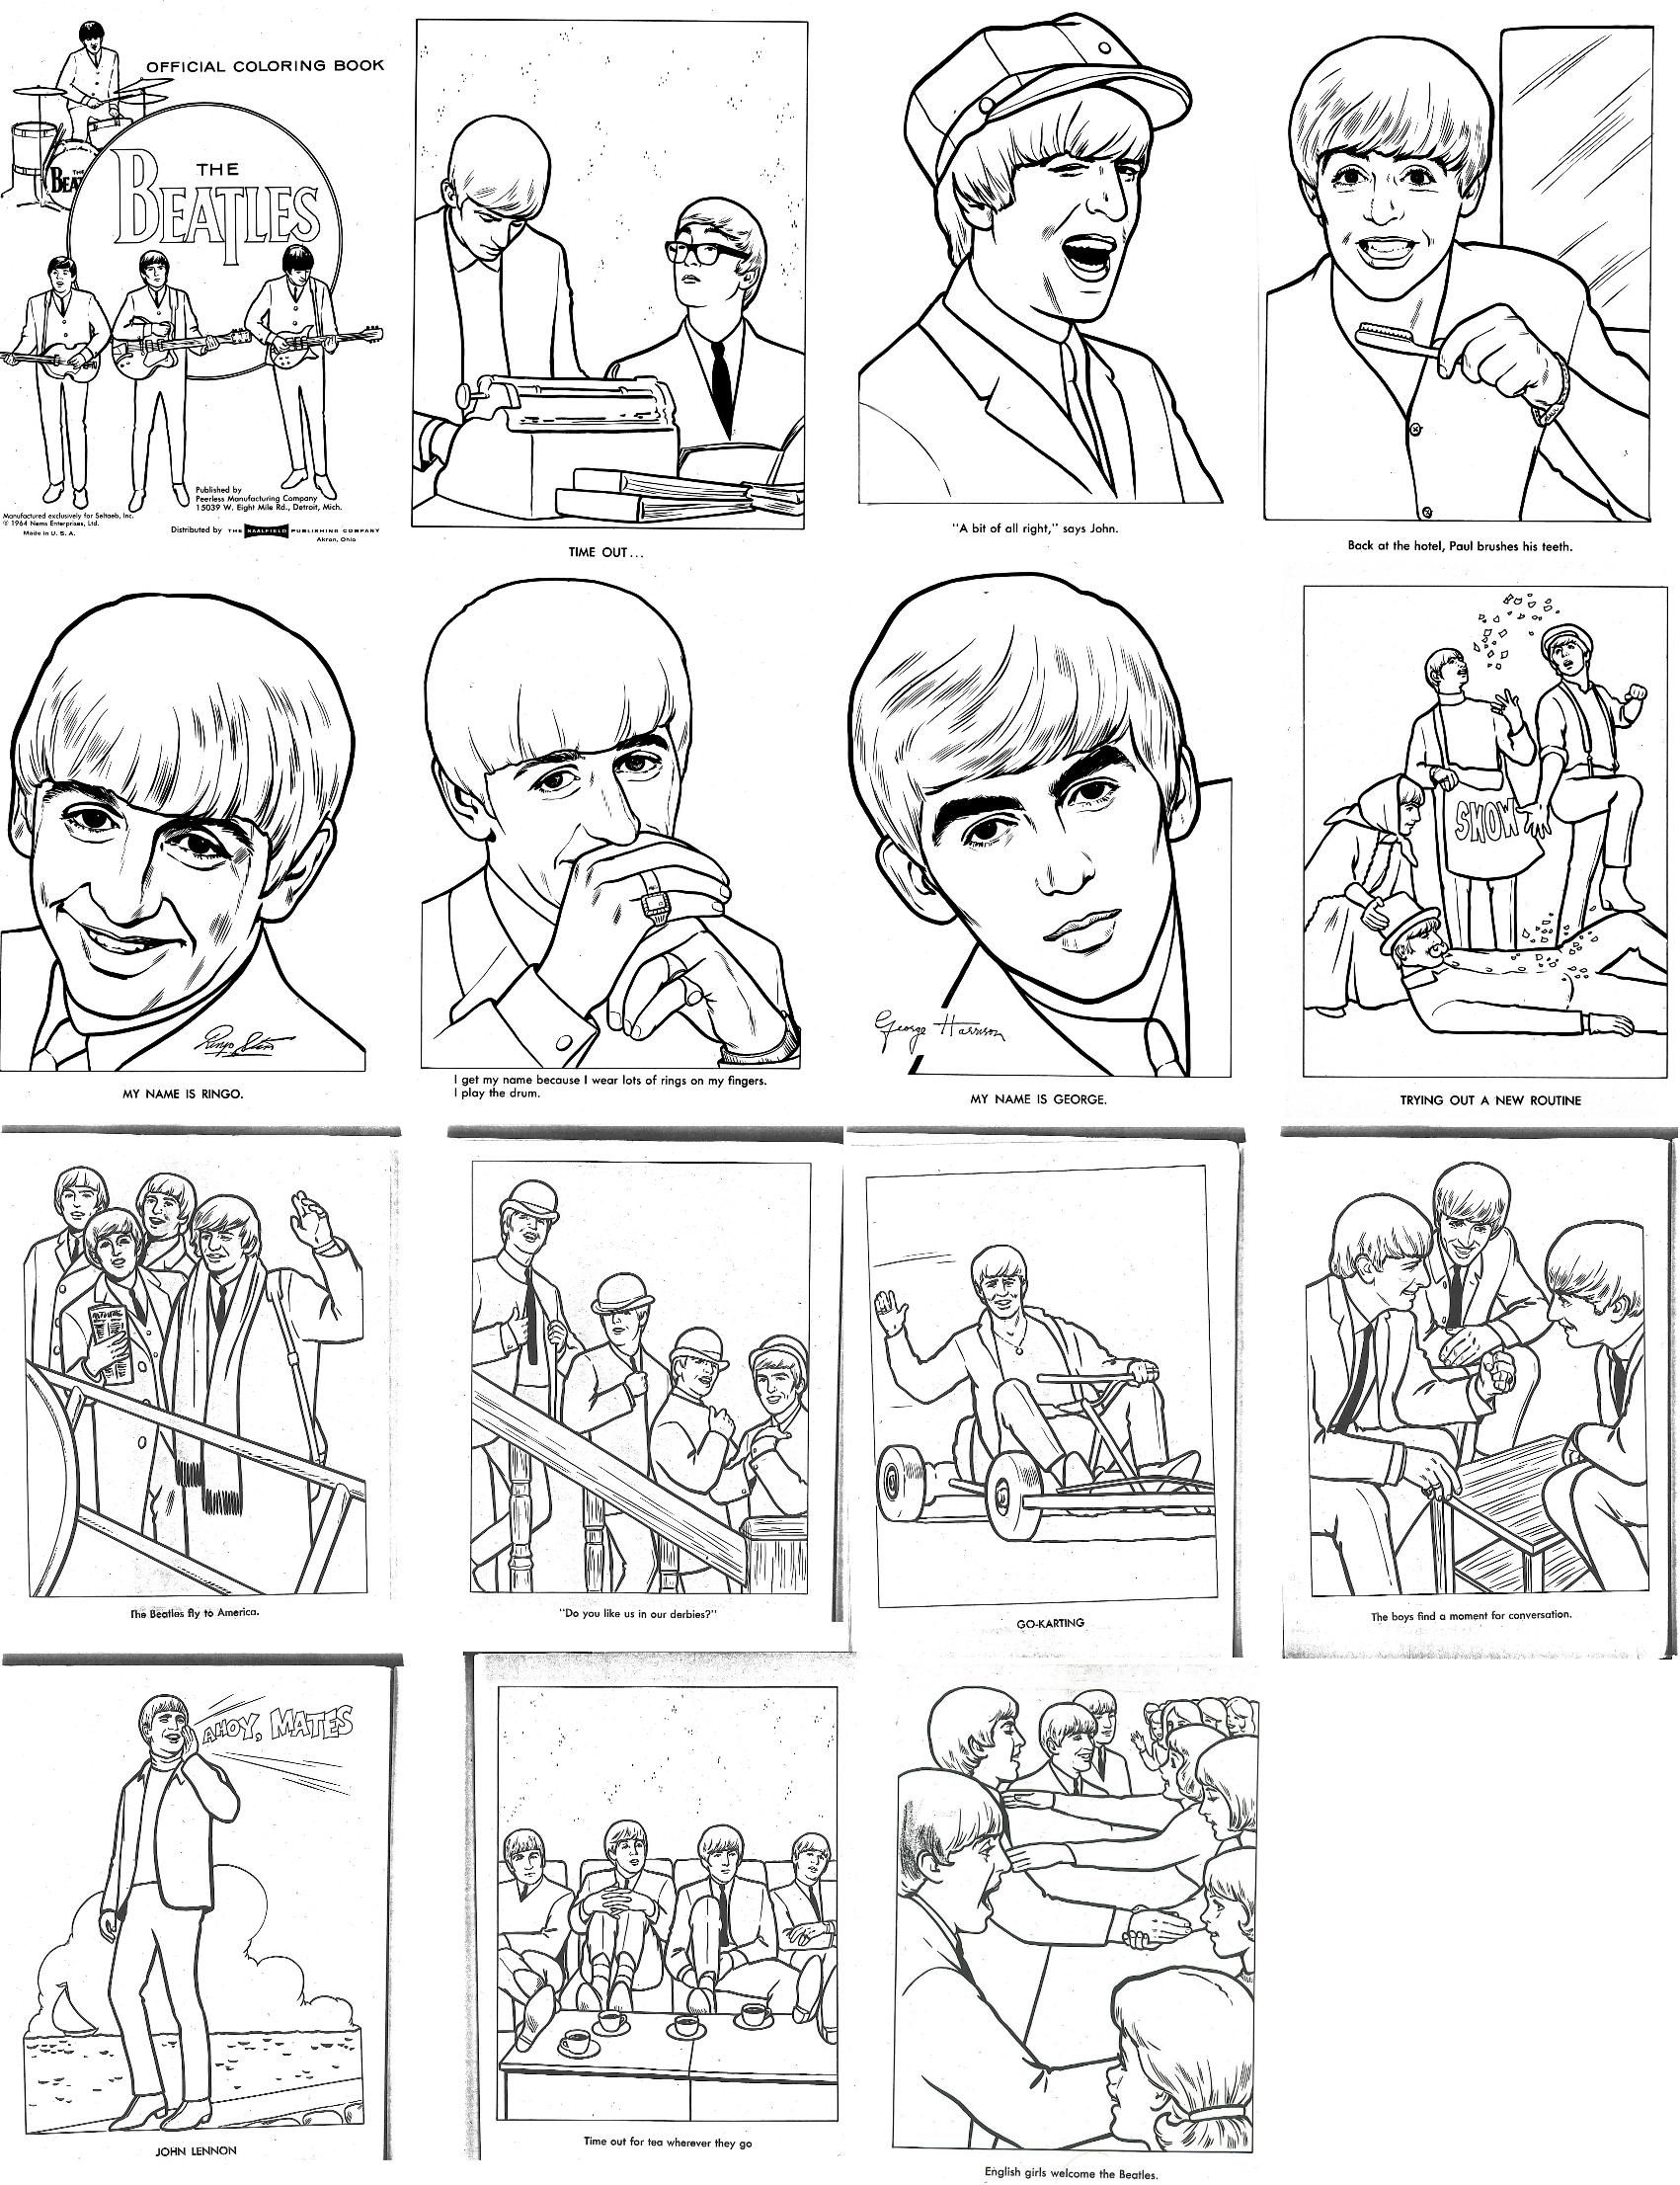 the beatles coloring book from the 1960s - Beatles Coloring Book